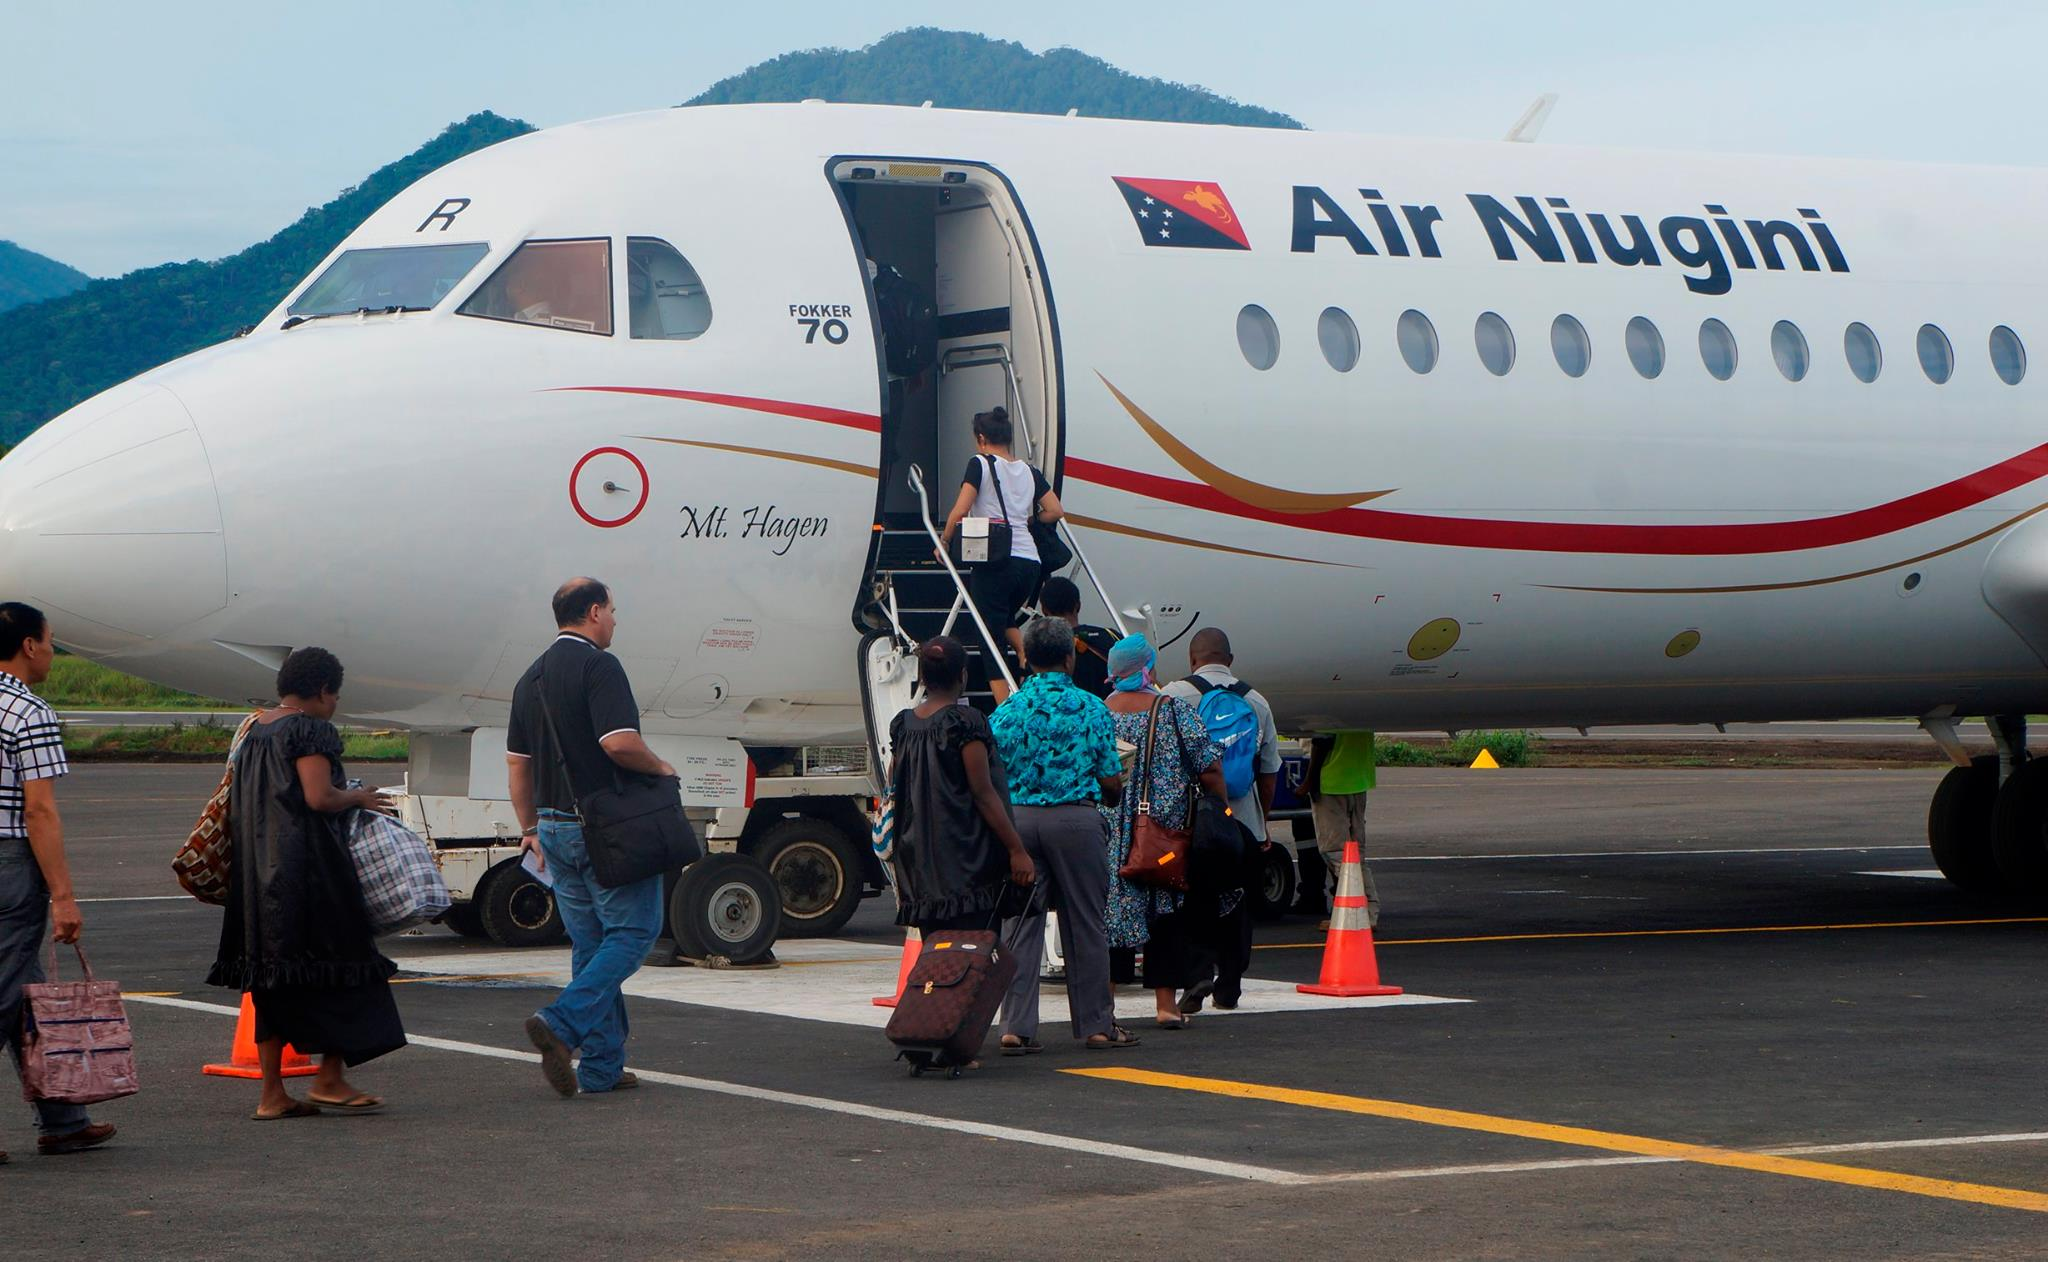 Air Niugini returning to normal operations